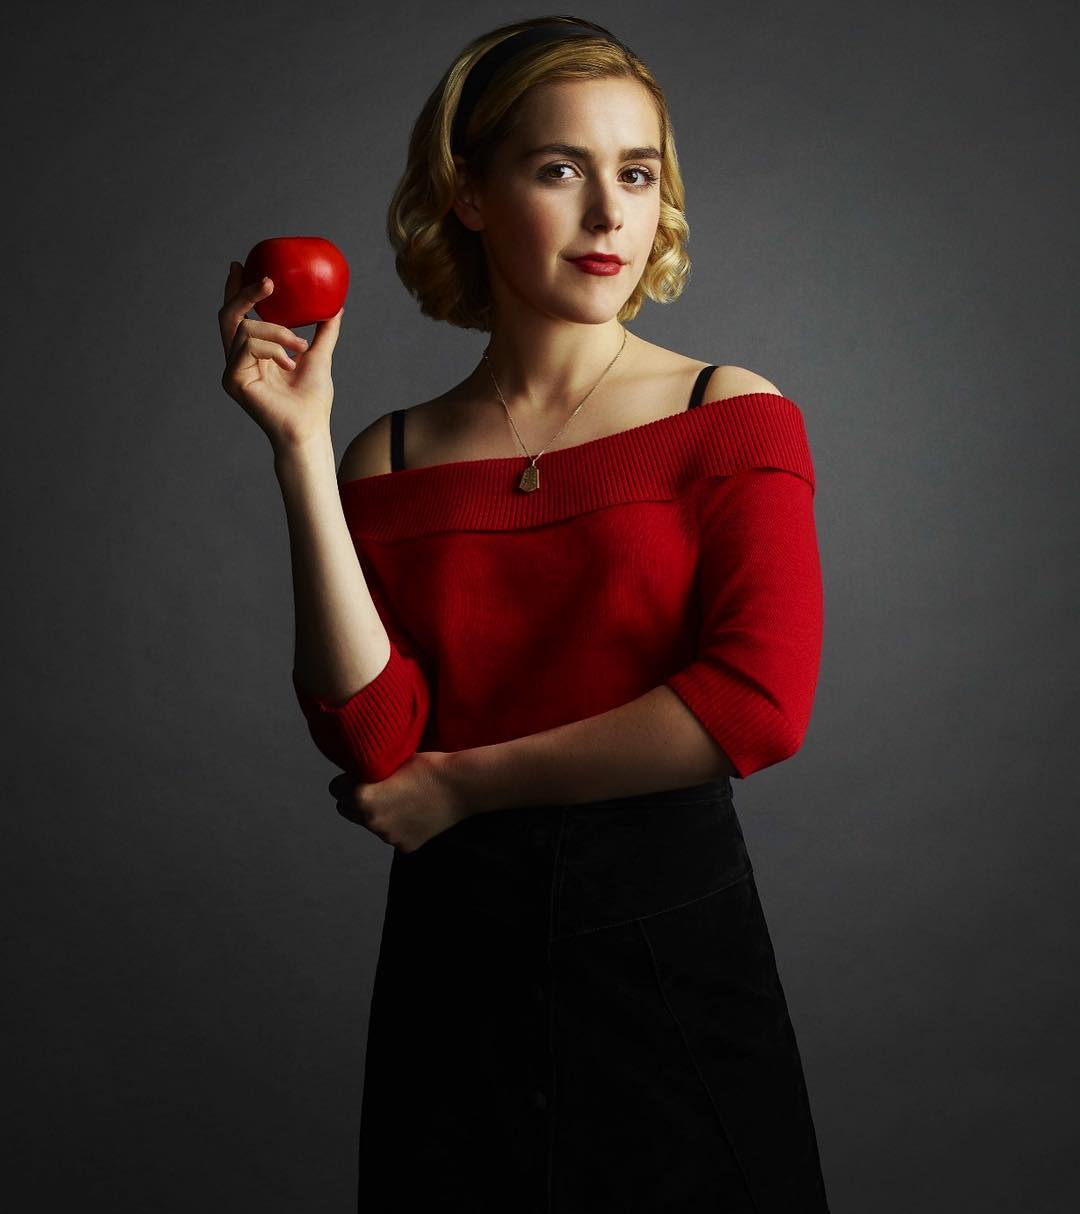 Lucifer Netflix Wiki: Chilling Adventures Of Sabrina Wiki